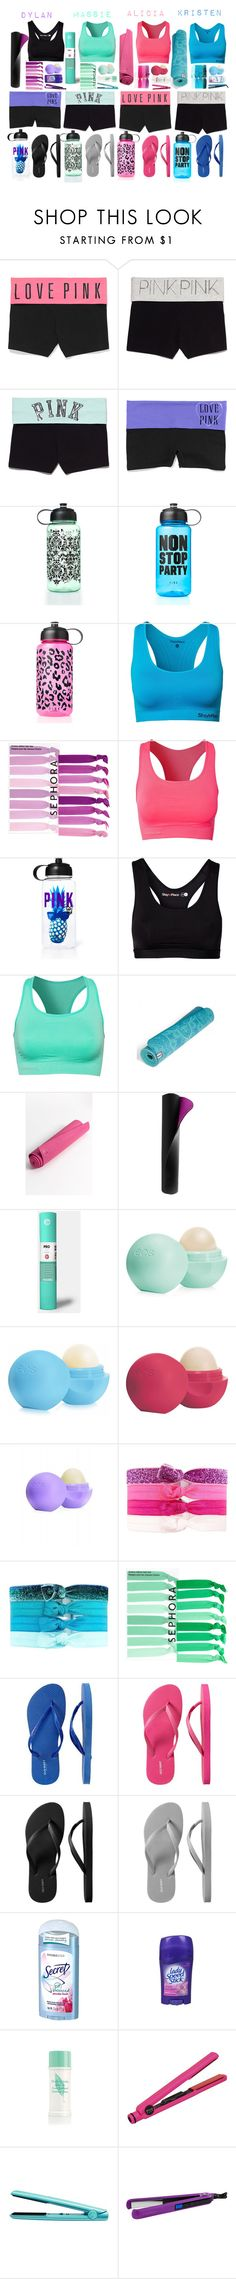 """""""The Clique- Yoga"""" by daniellenicole ❤ liked on Polyvore featuring Victoria's Secret PINK, Stay In Place, Sephora Collection, Pure Lime, prAna, Alo, Under Armour, Manduka, Eos and Charlotte Russe"""